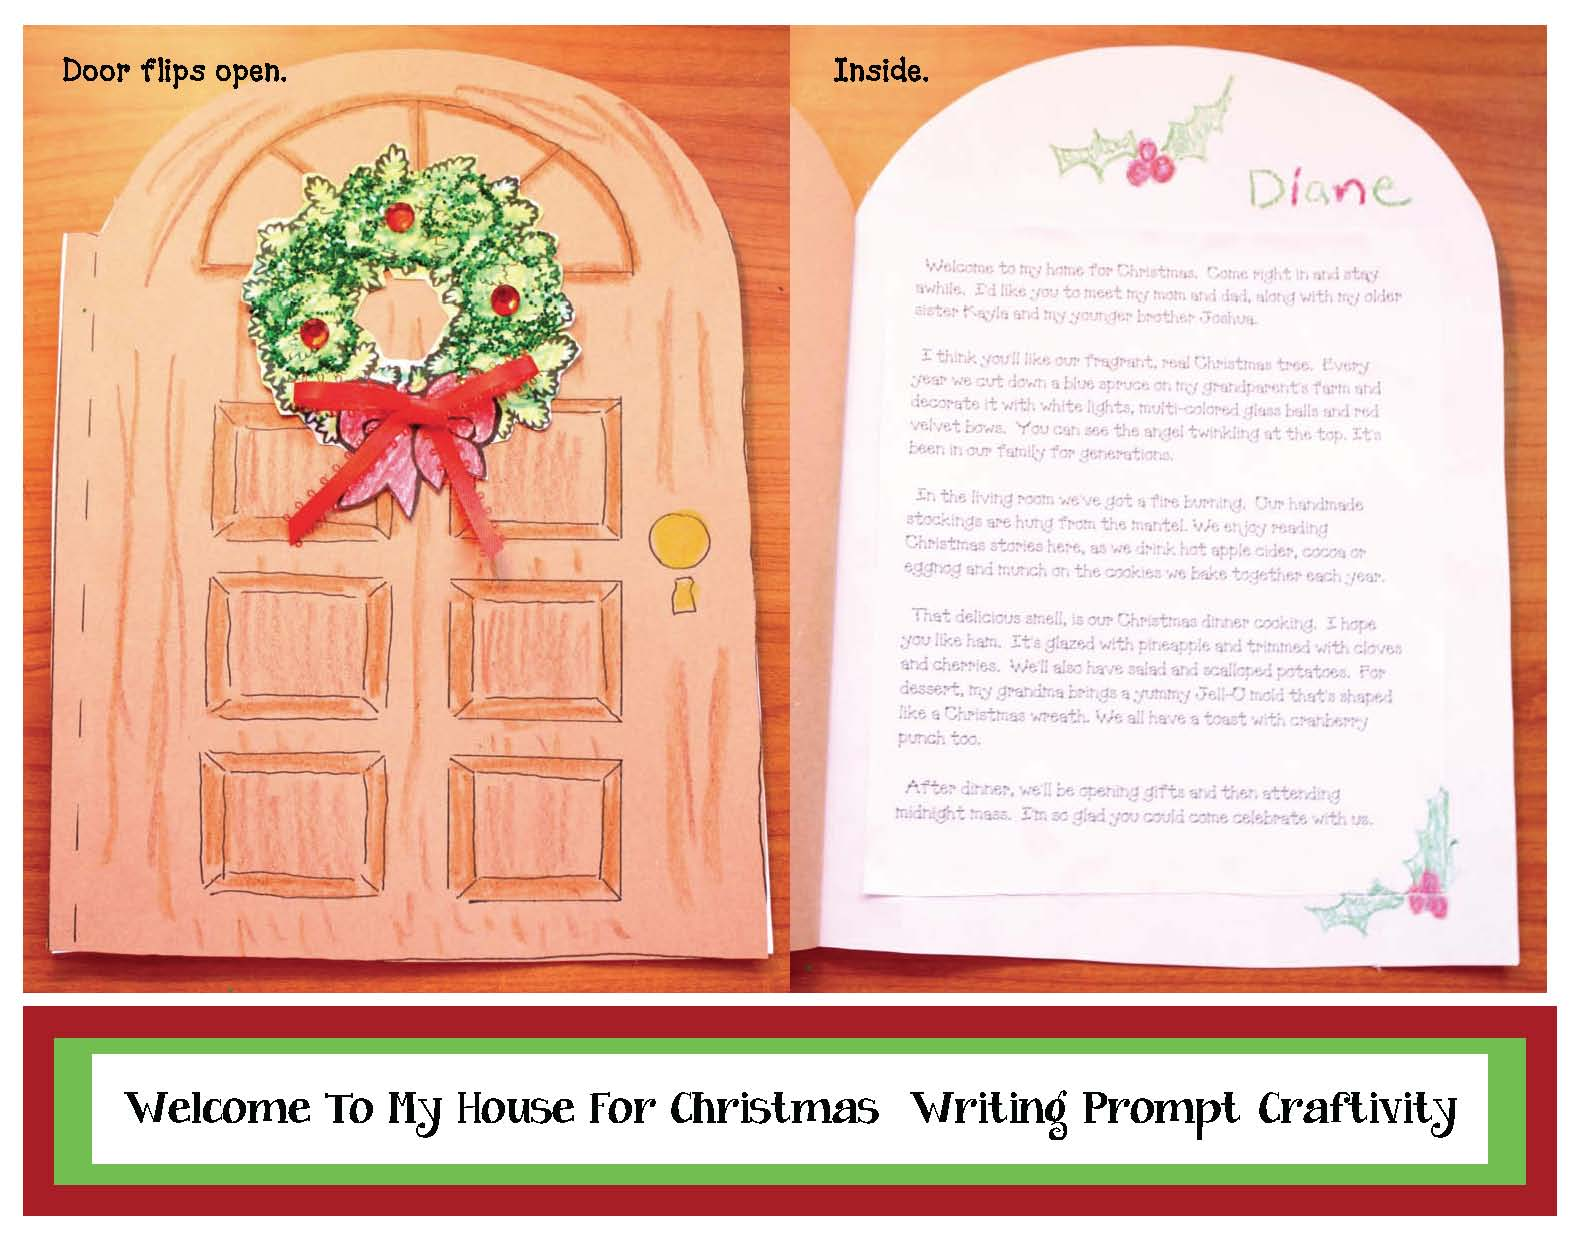 creative writing prompts for Christmas, spin a story, spin a story writing prompt games, writing prompts for december, december bulletin board ideas, dear santa letter, spin a Christmas story, writing games and activities for winter